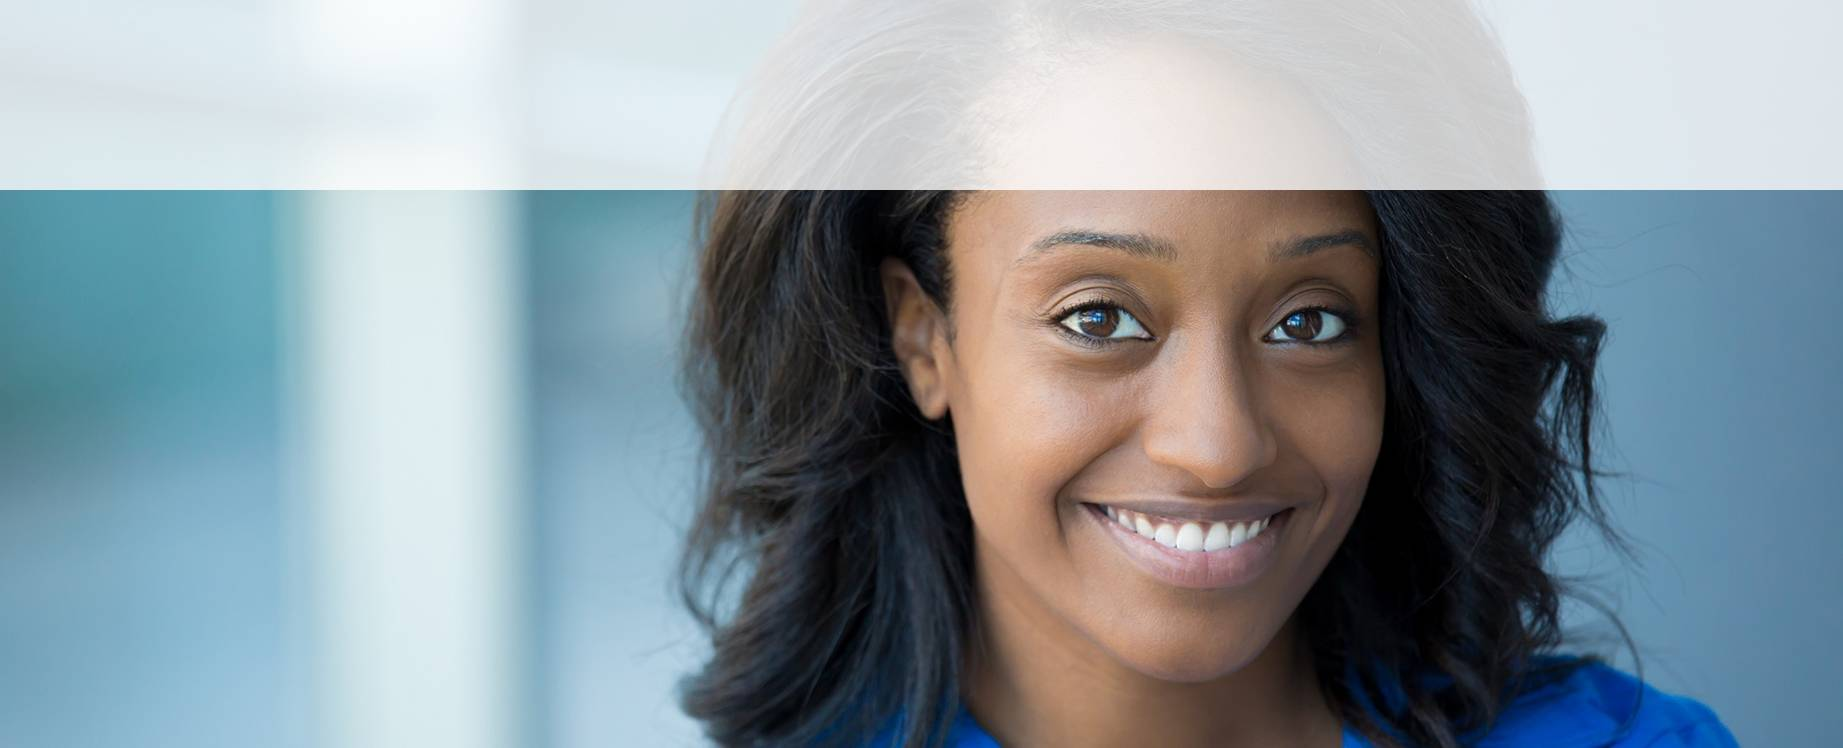 young professional woman smiling into camera